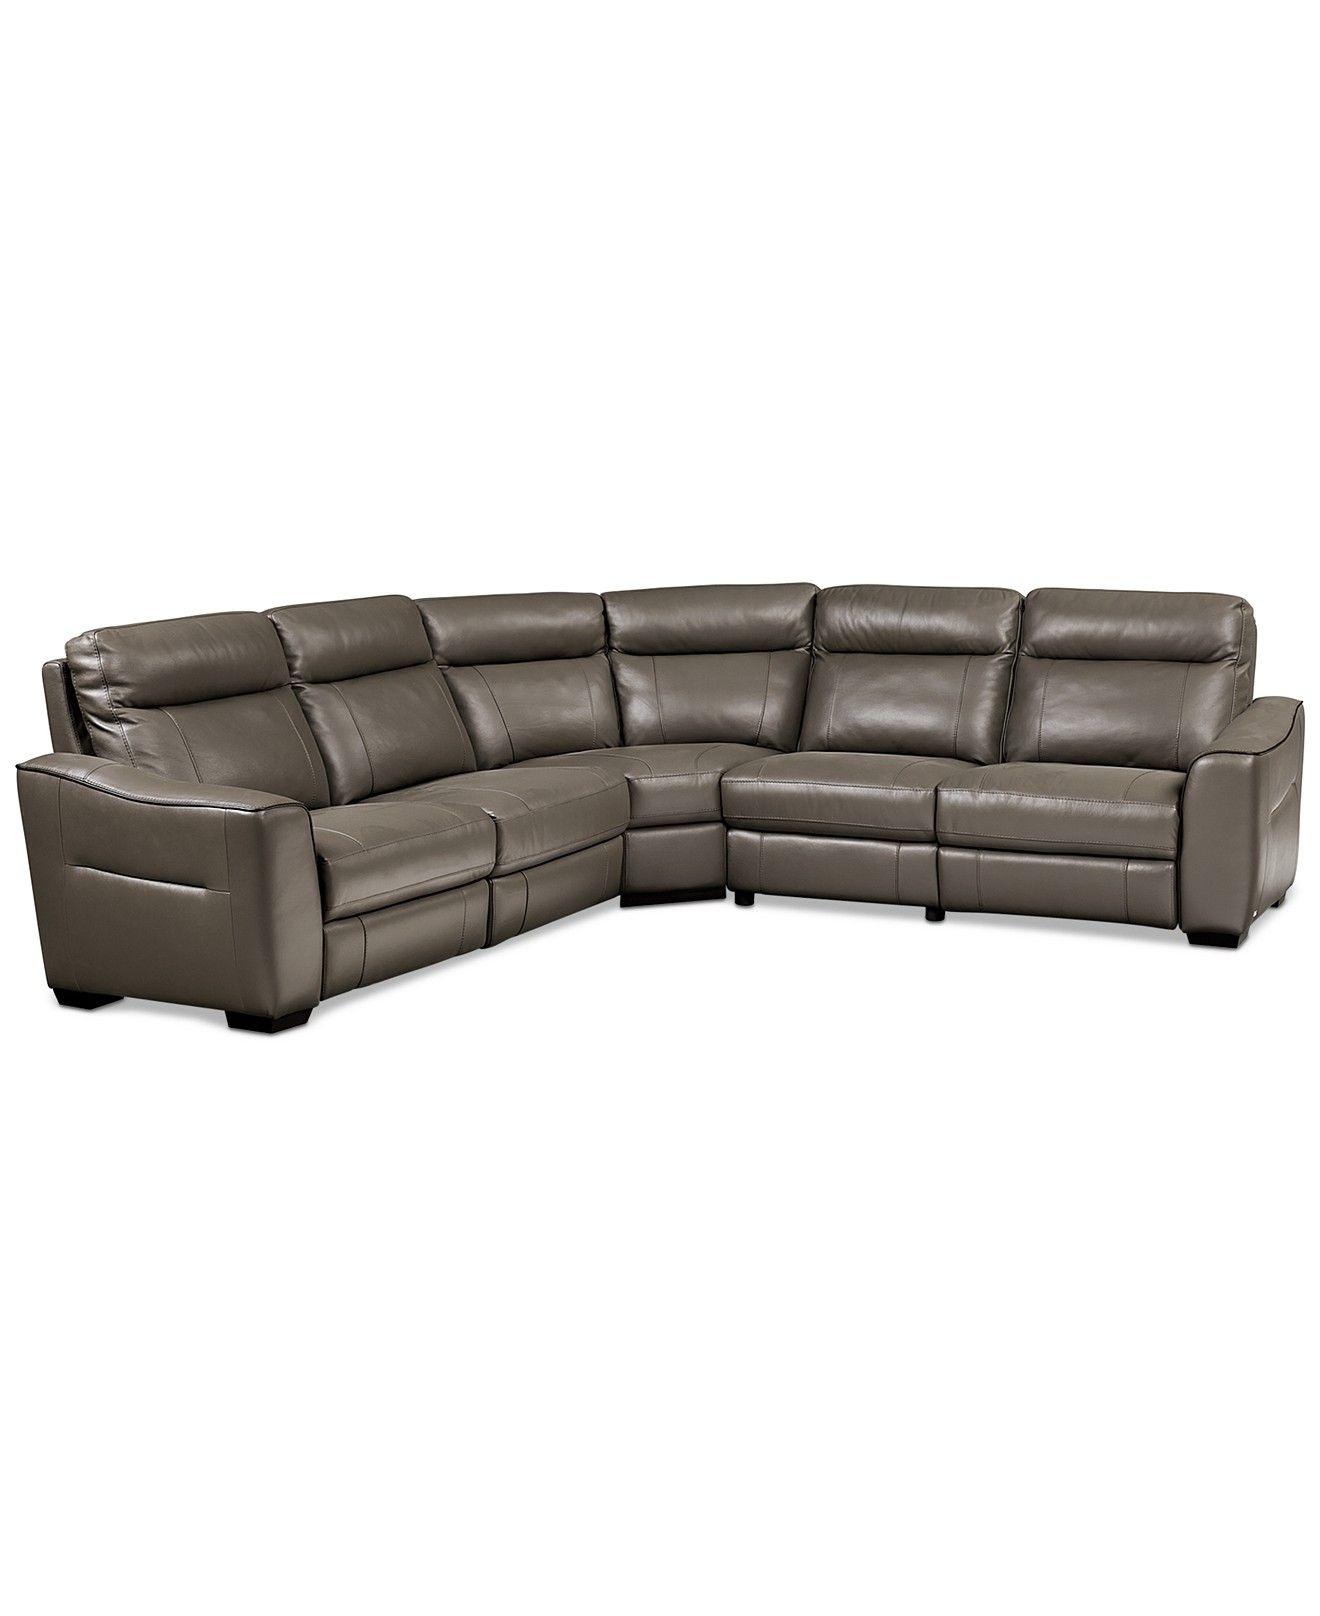 Destin Leather 5 Piece Sectional Sofa With 3 Power Recliners Throughout Macys Leather Sectional Sofas (Image 3 of 10)